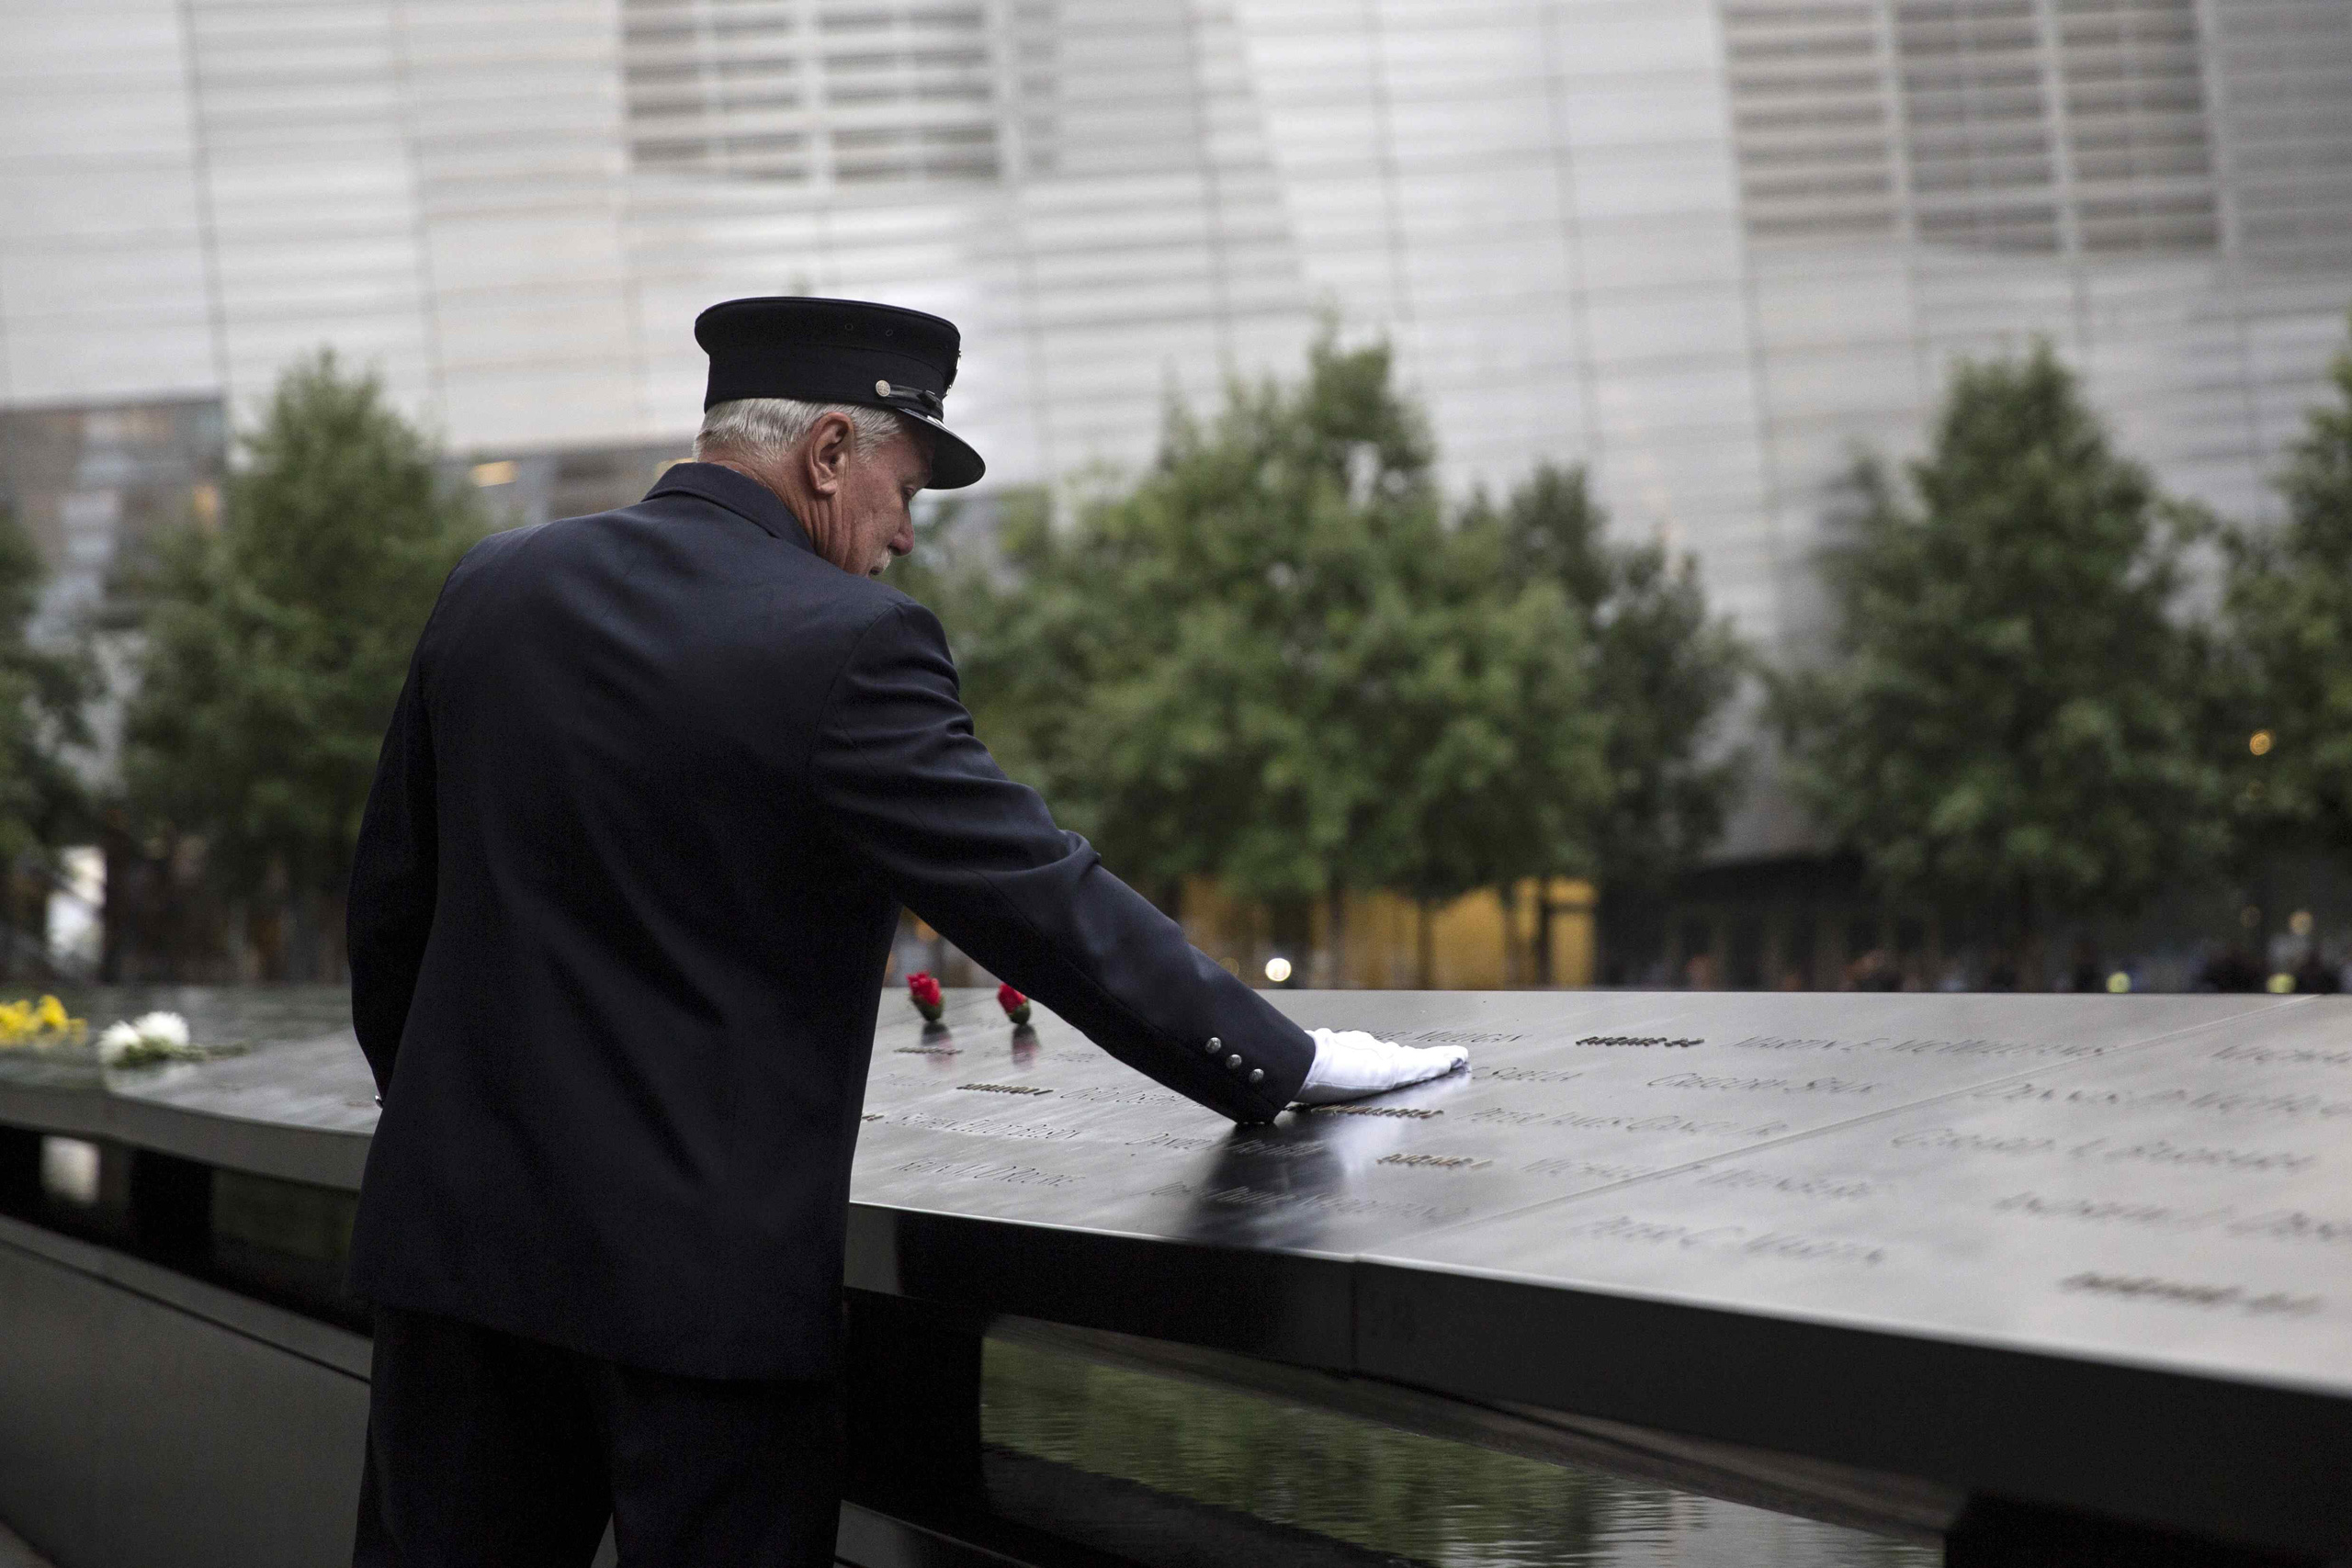 A member of the New York Fire Department places his hand on the memorial before a ceremony marking the 14th anniversary of the 9/11 attacks, at the National September 11 Memorial and Museum in Lower Manhattan in New York September 11, 2015.